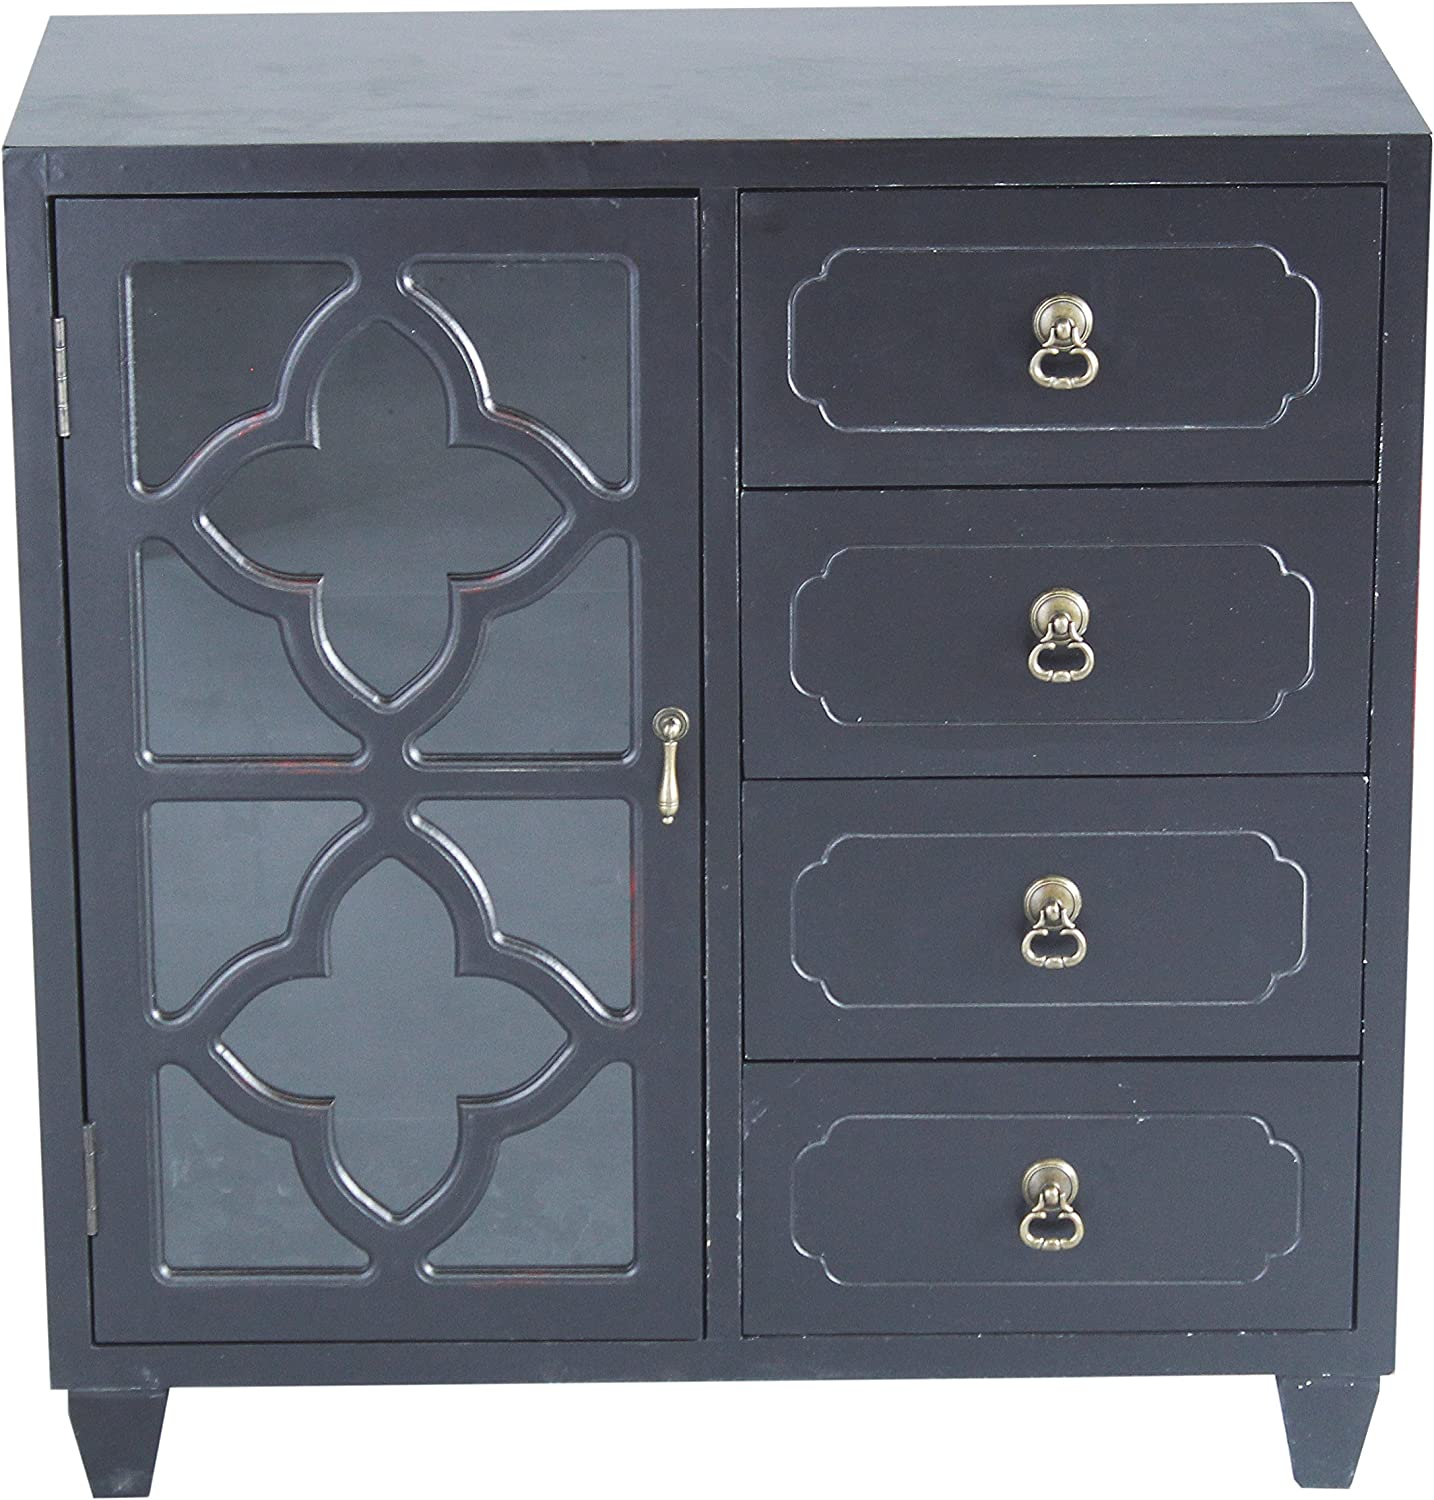 Heather Ann Creations 4 Drawer Wooden Accent Chest and Cabinet, Clover Pattern Grille with Glass Backing, 30.75 H x 29.5 W, Black